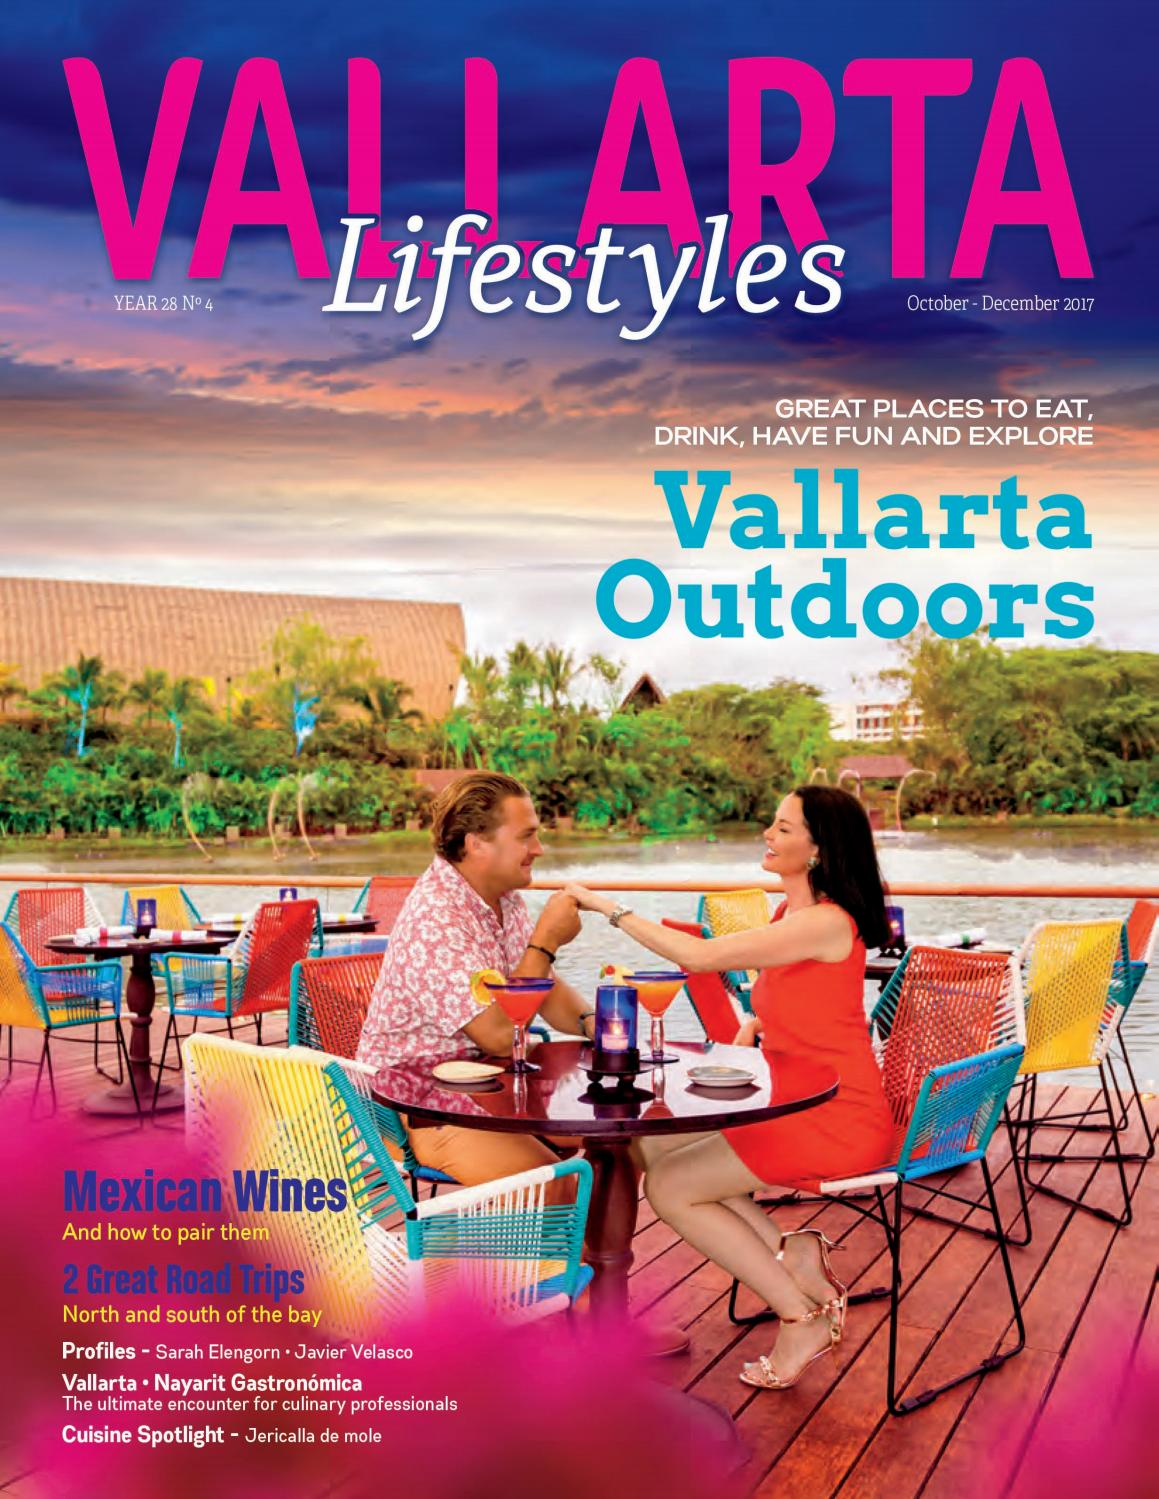 vallarta lifestyles octubre diciembre 2017 by vallarta lifestyles media group issuu. Black Bedroom Furniture Sets. Home Design Ideas